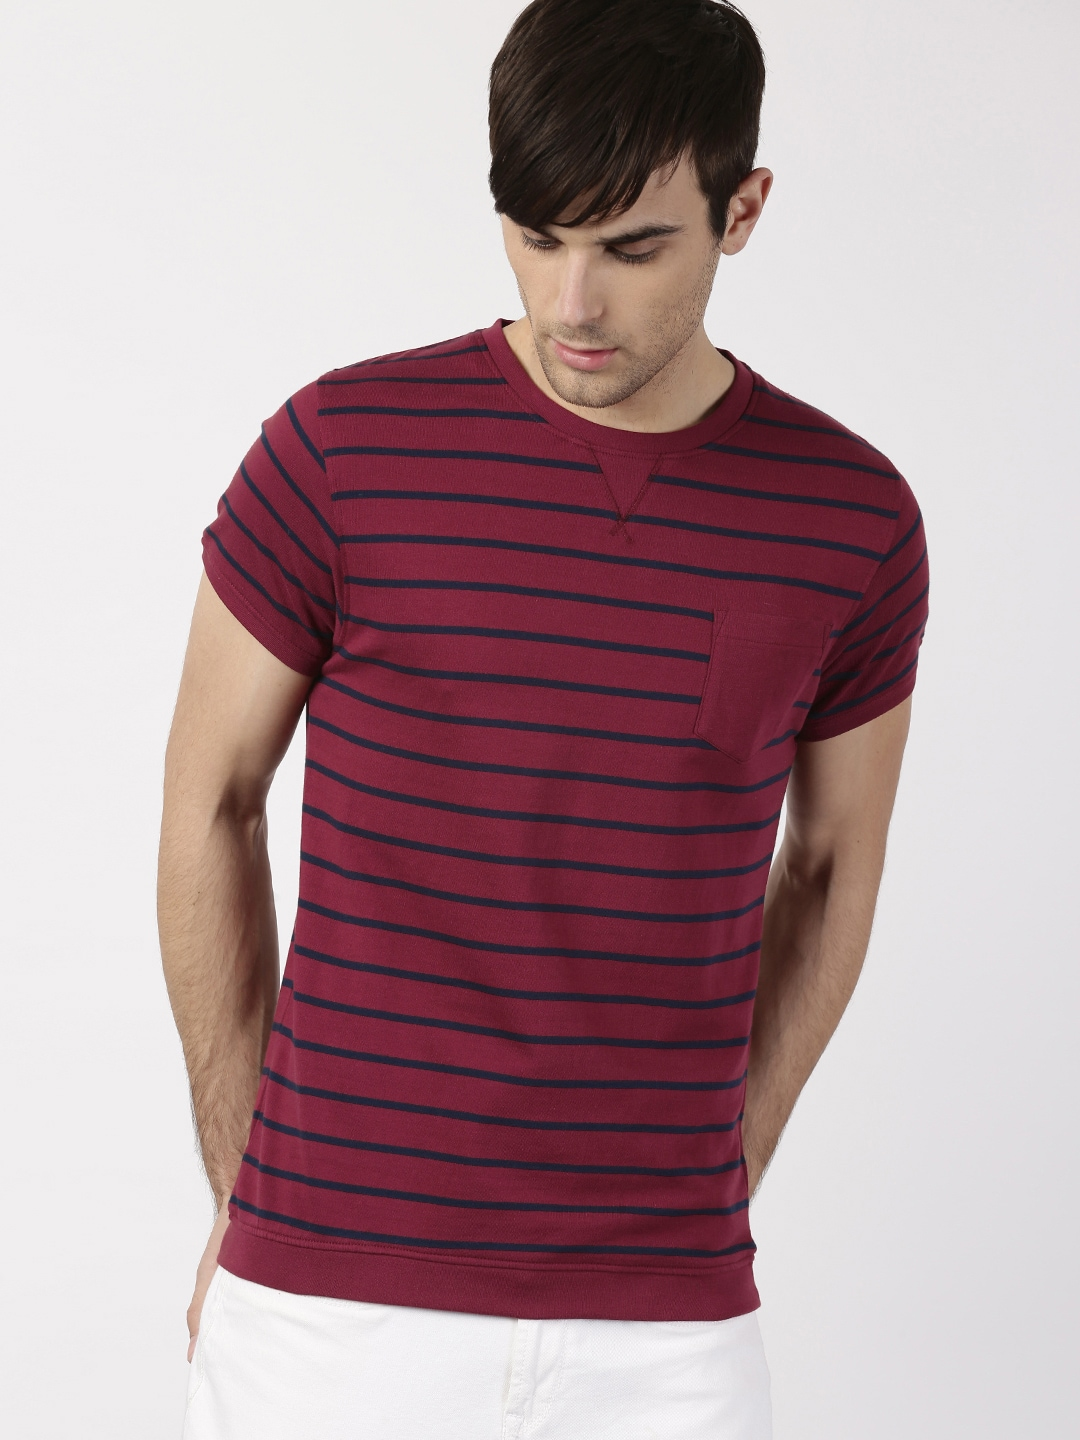 560cb40efe Ether Striped Tshirts - Buy Ether Striped Tshirts online in India